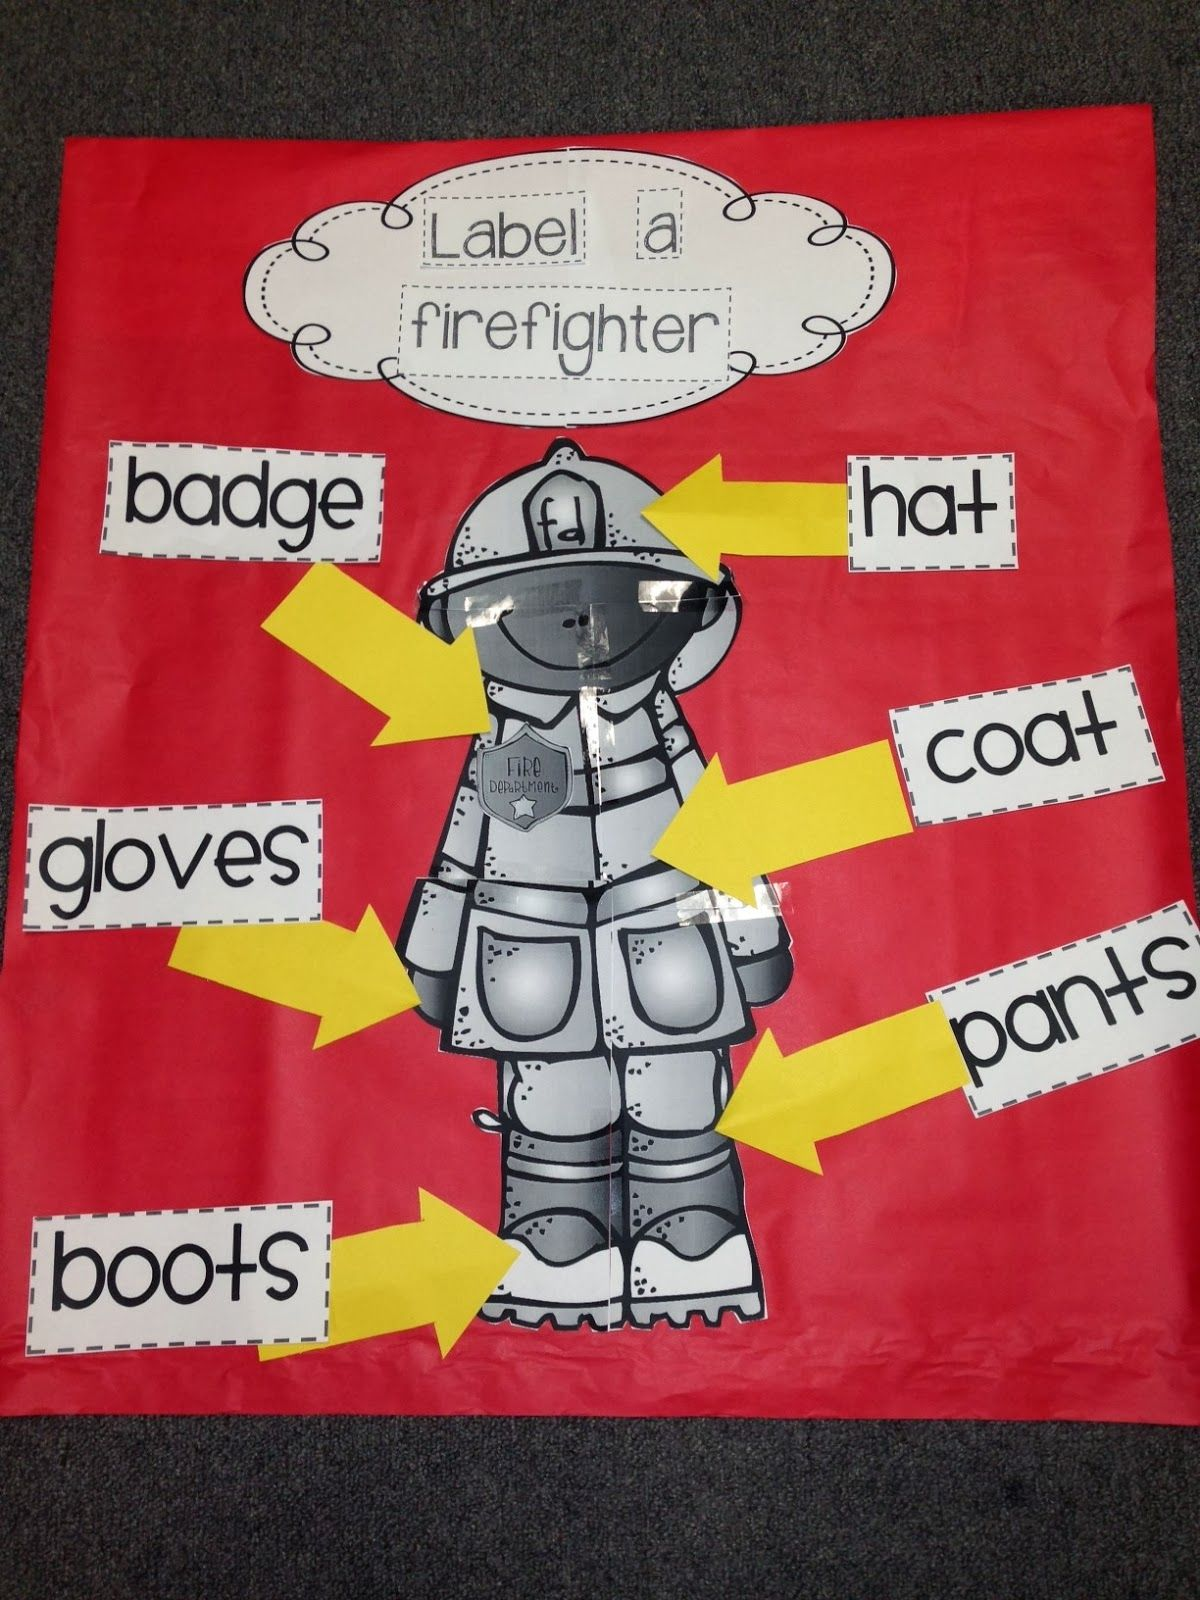 Label A Firefighter Activity From Chalk Talk A Kindergarten Blog